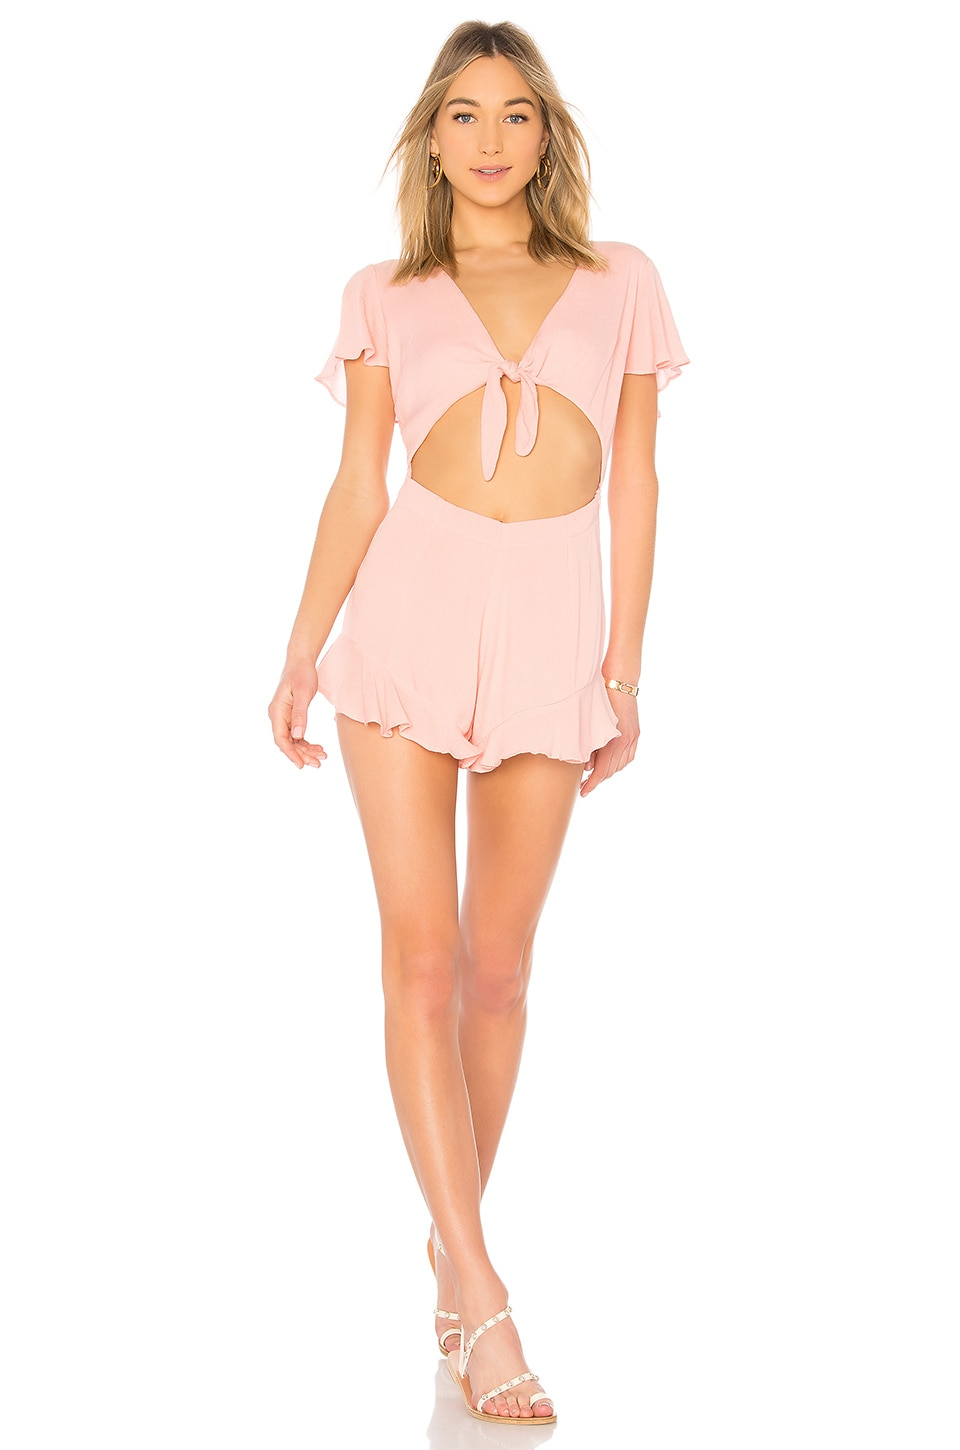 lolli swim Flirty Romper in Pinky Swear